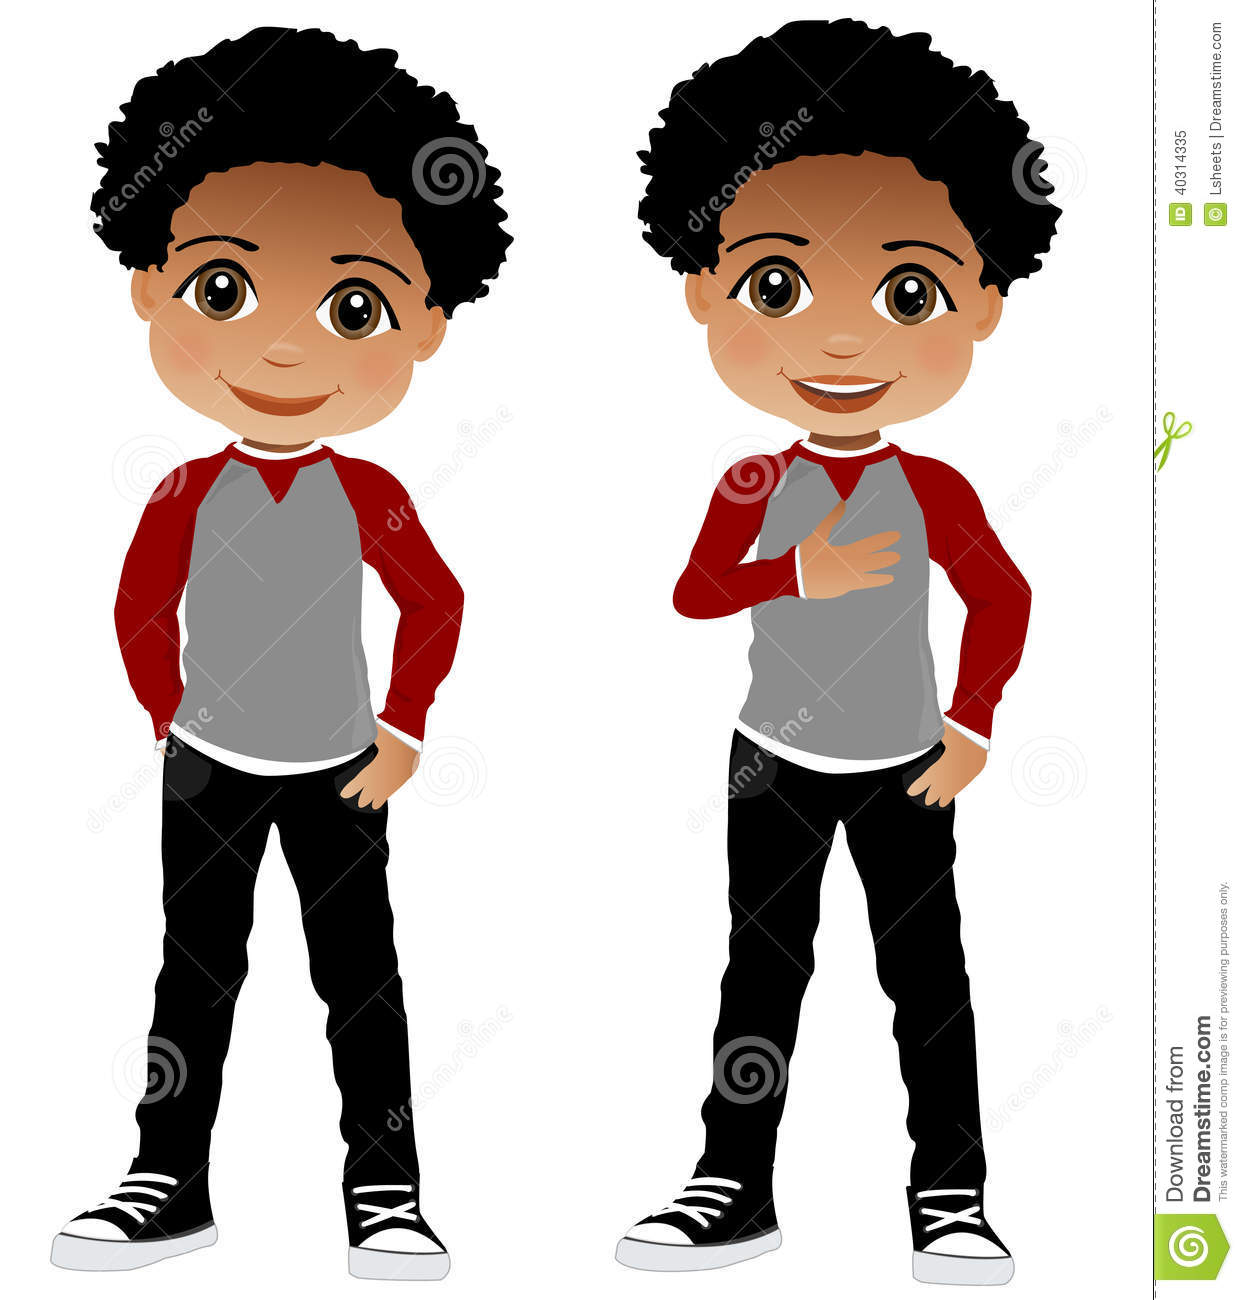 Afro clipart boy freeuse download Black children clipart 4 » Clipart Station freeuse download